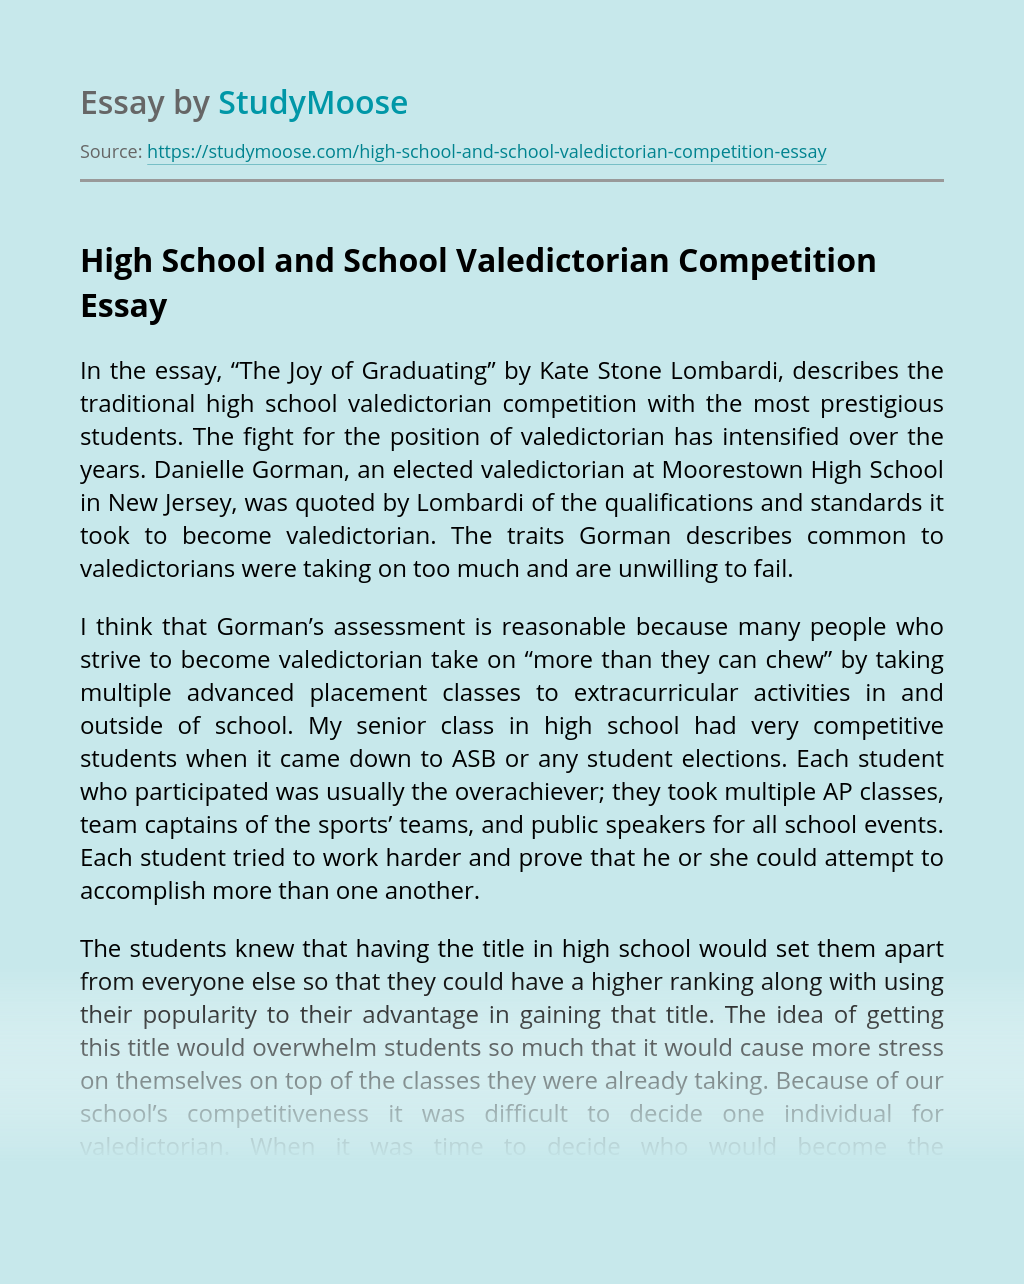 High School and School Valedictorian Competition